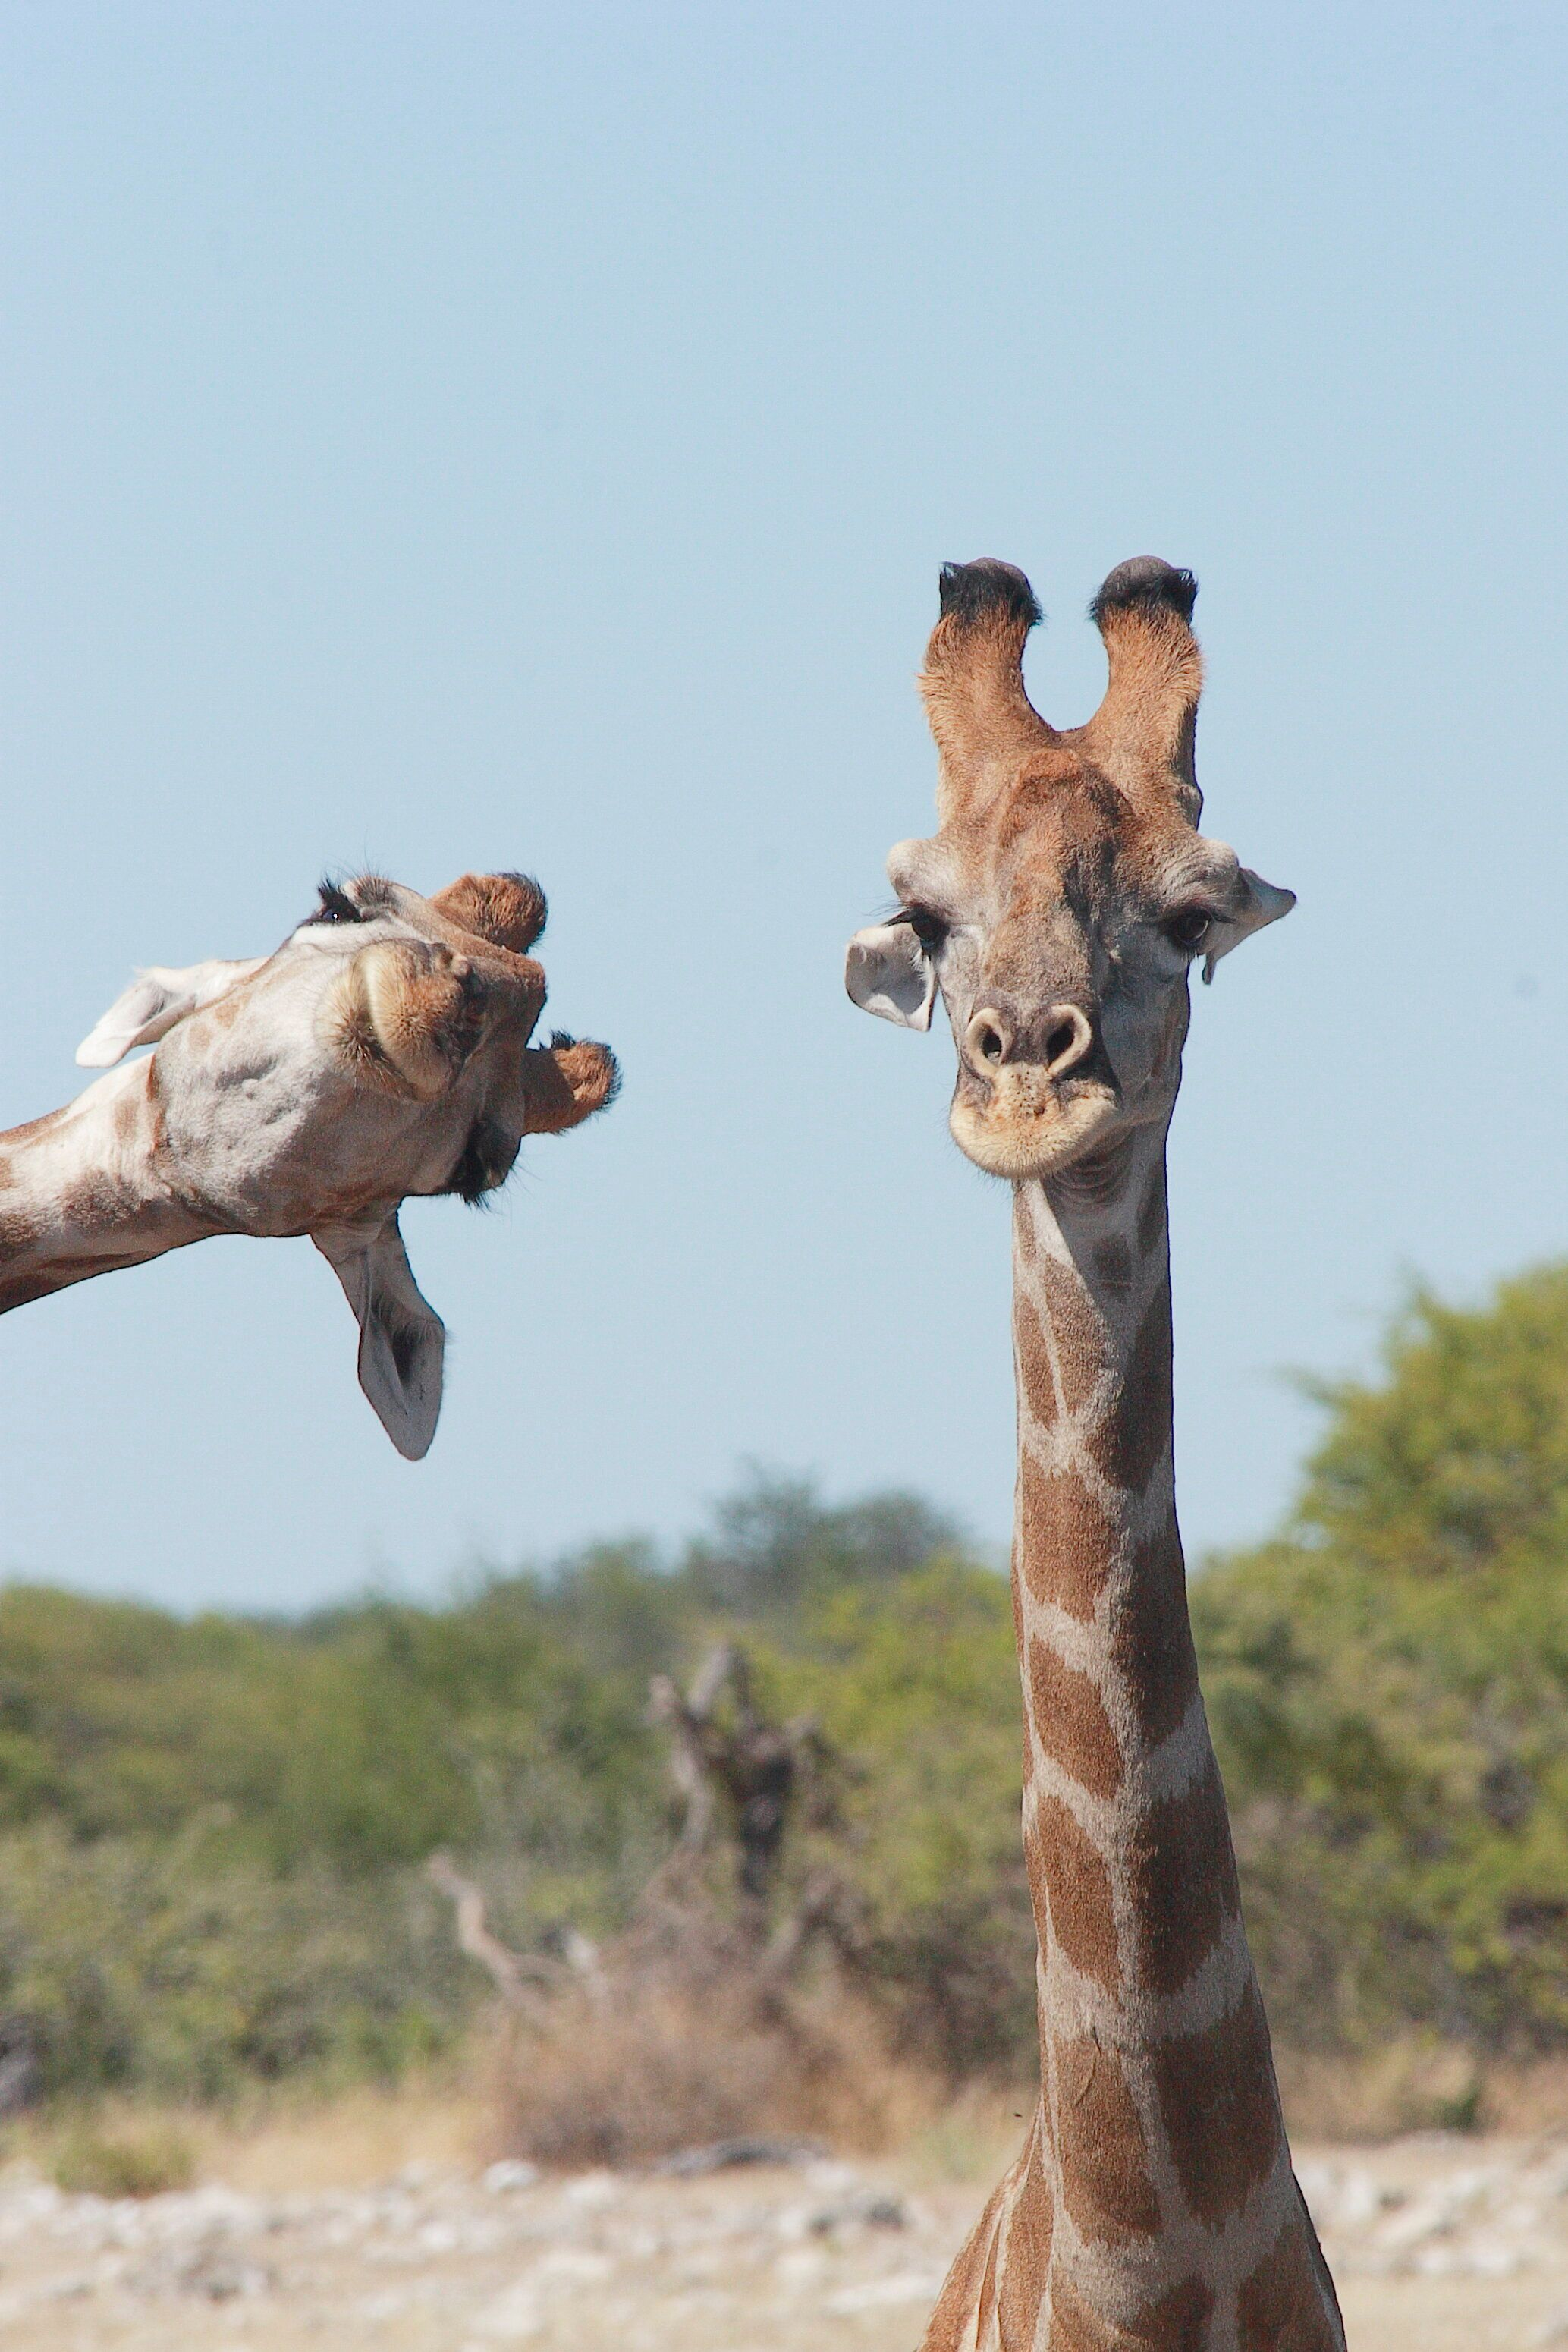 """Crashing into the Picture"" shows a couple of giraffes in Etosha National Park, Namibia."